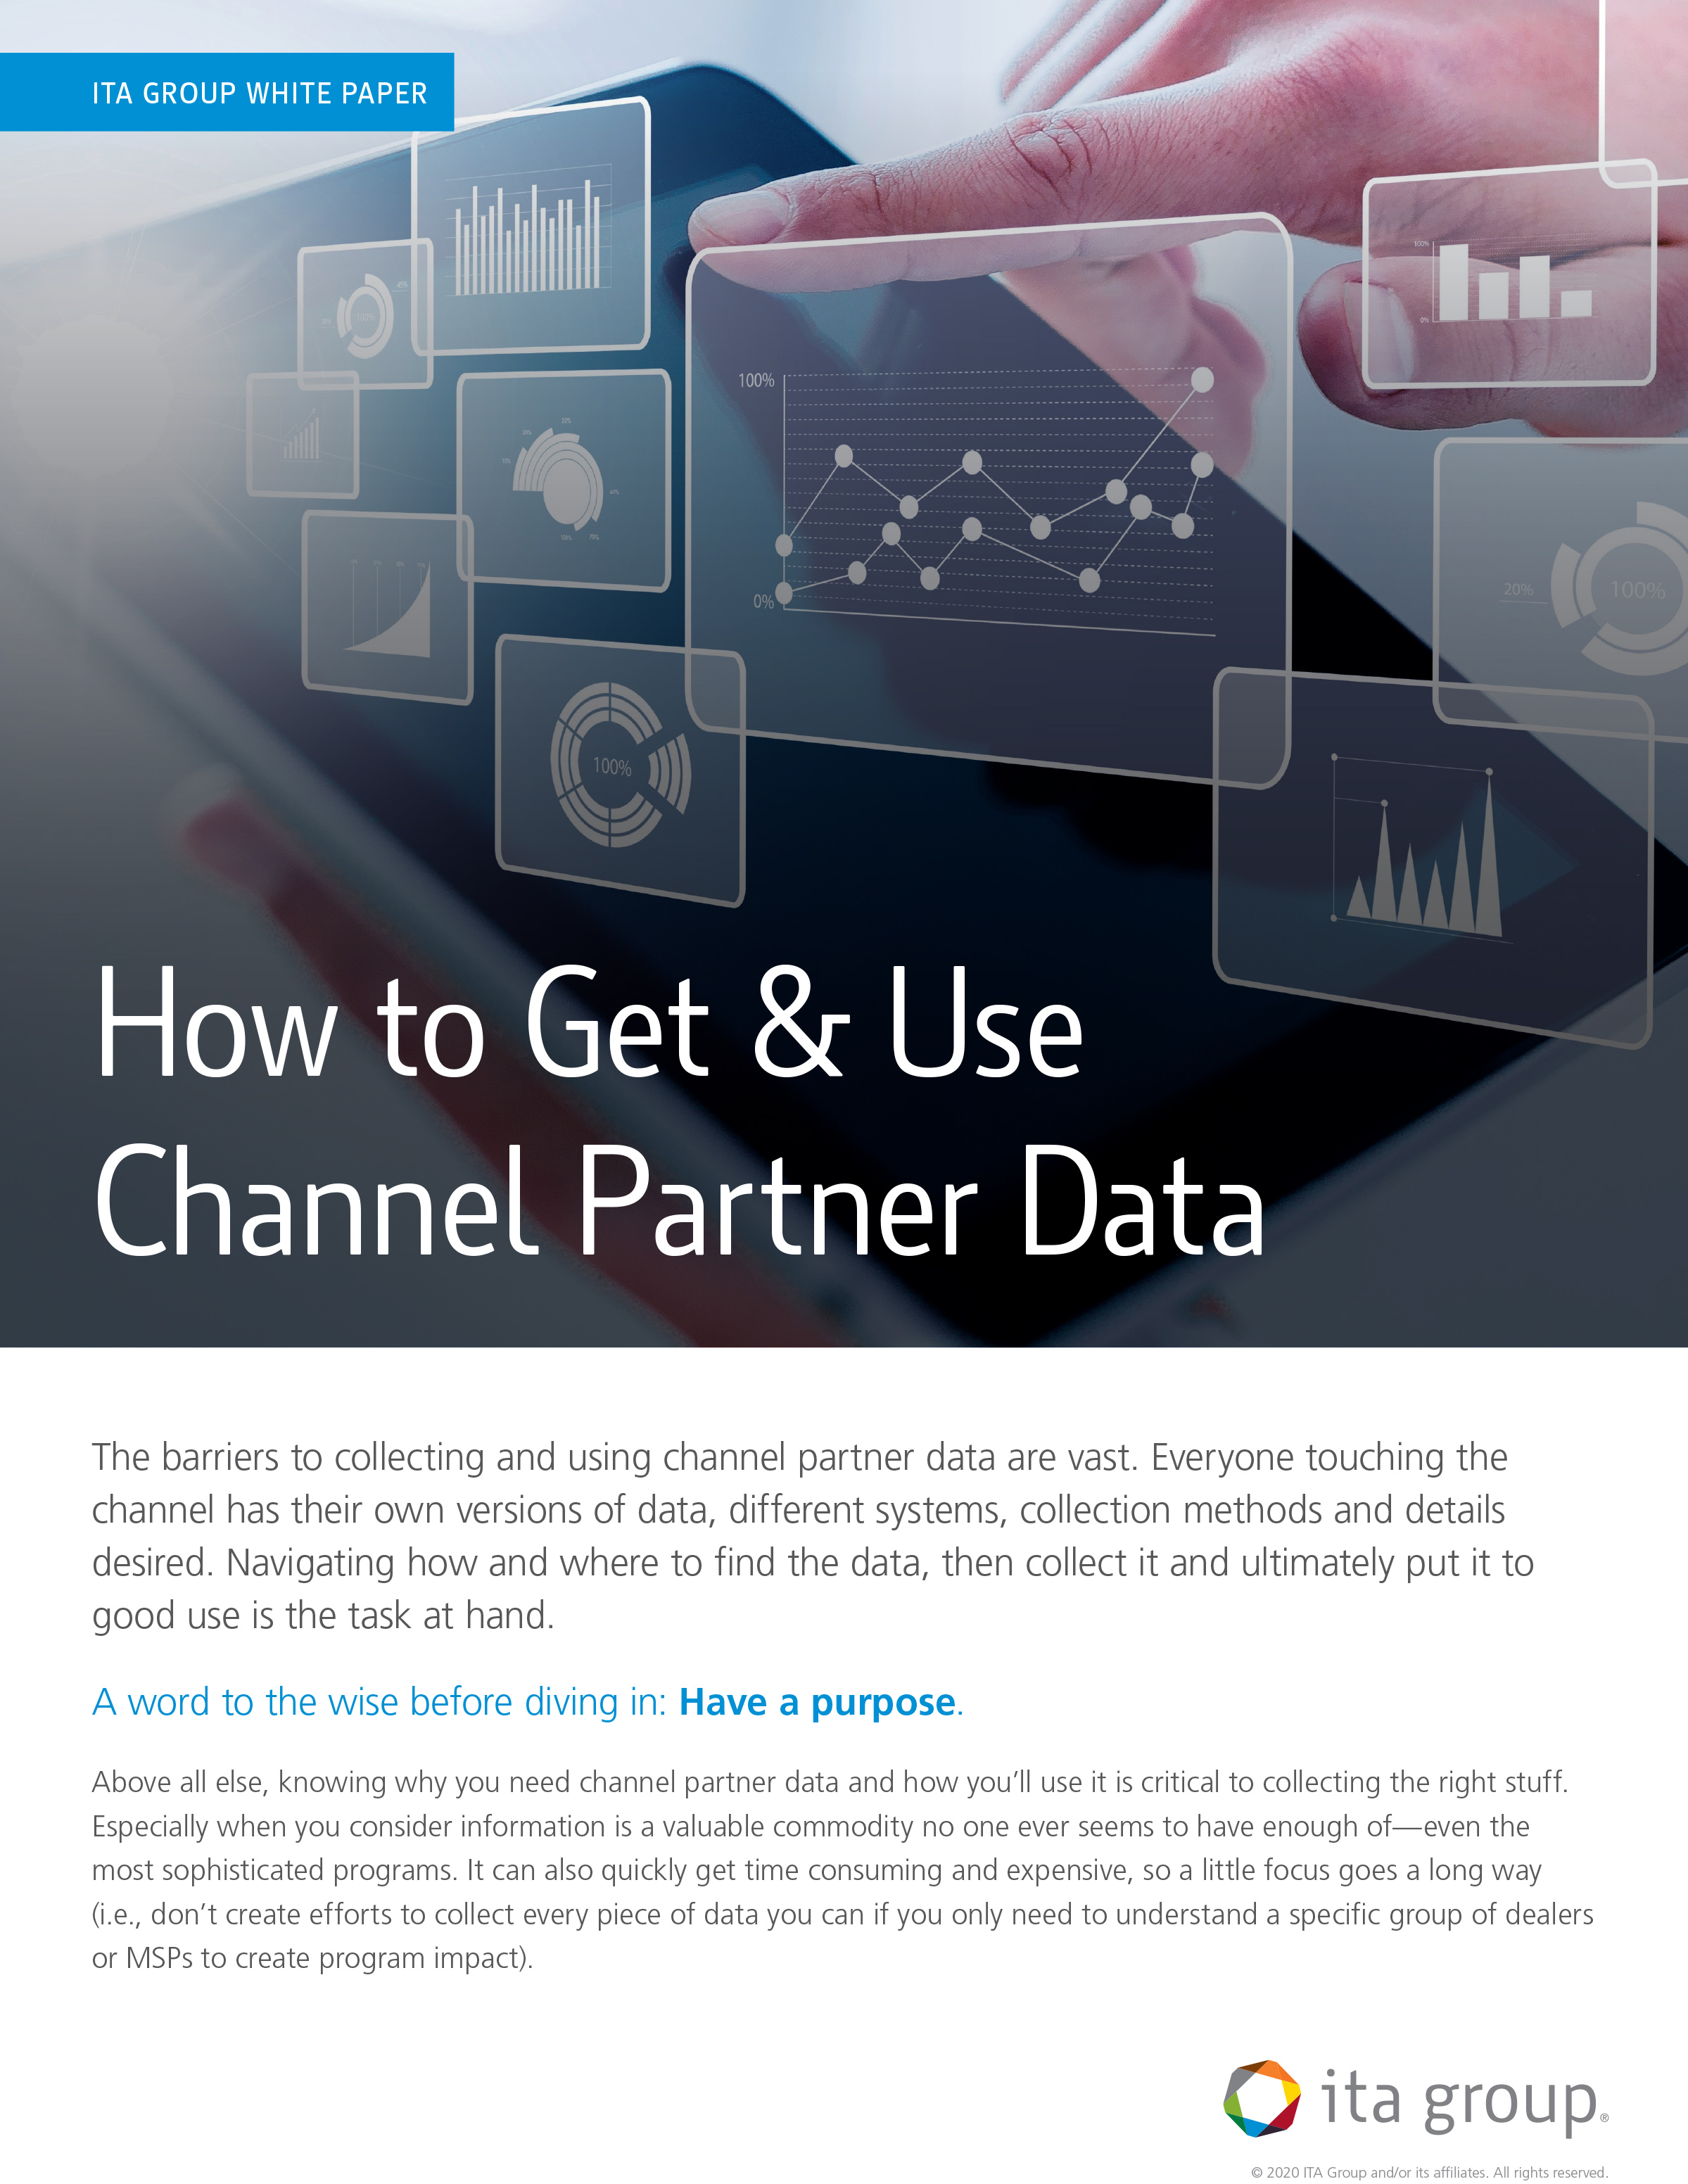 How To Get & Use Channel Partner Data